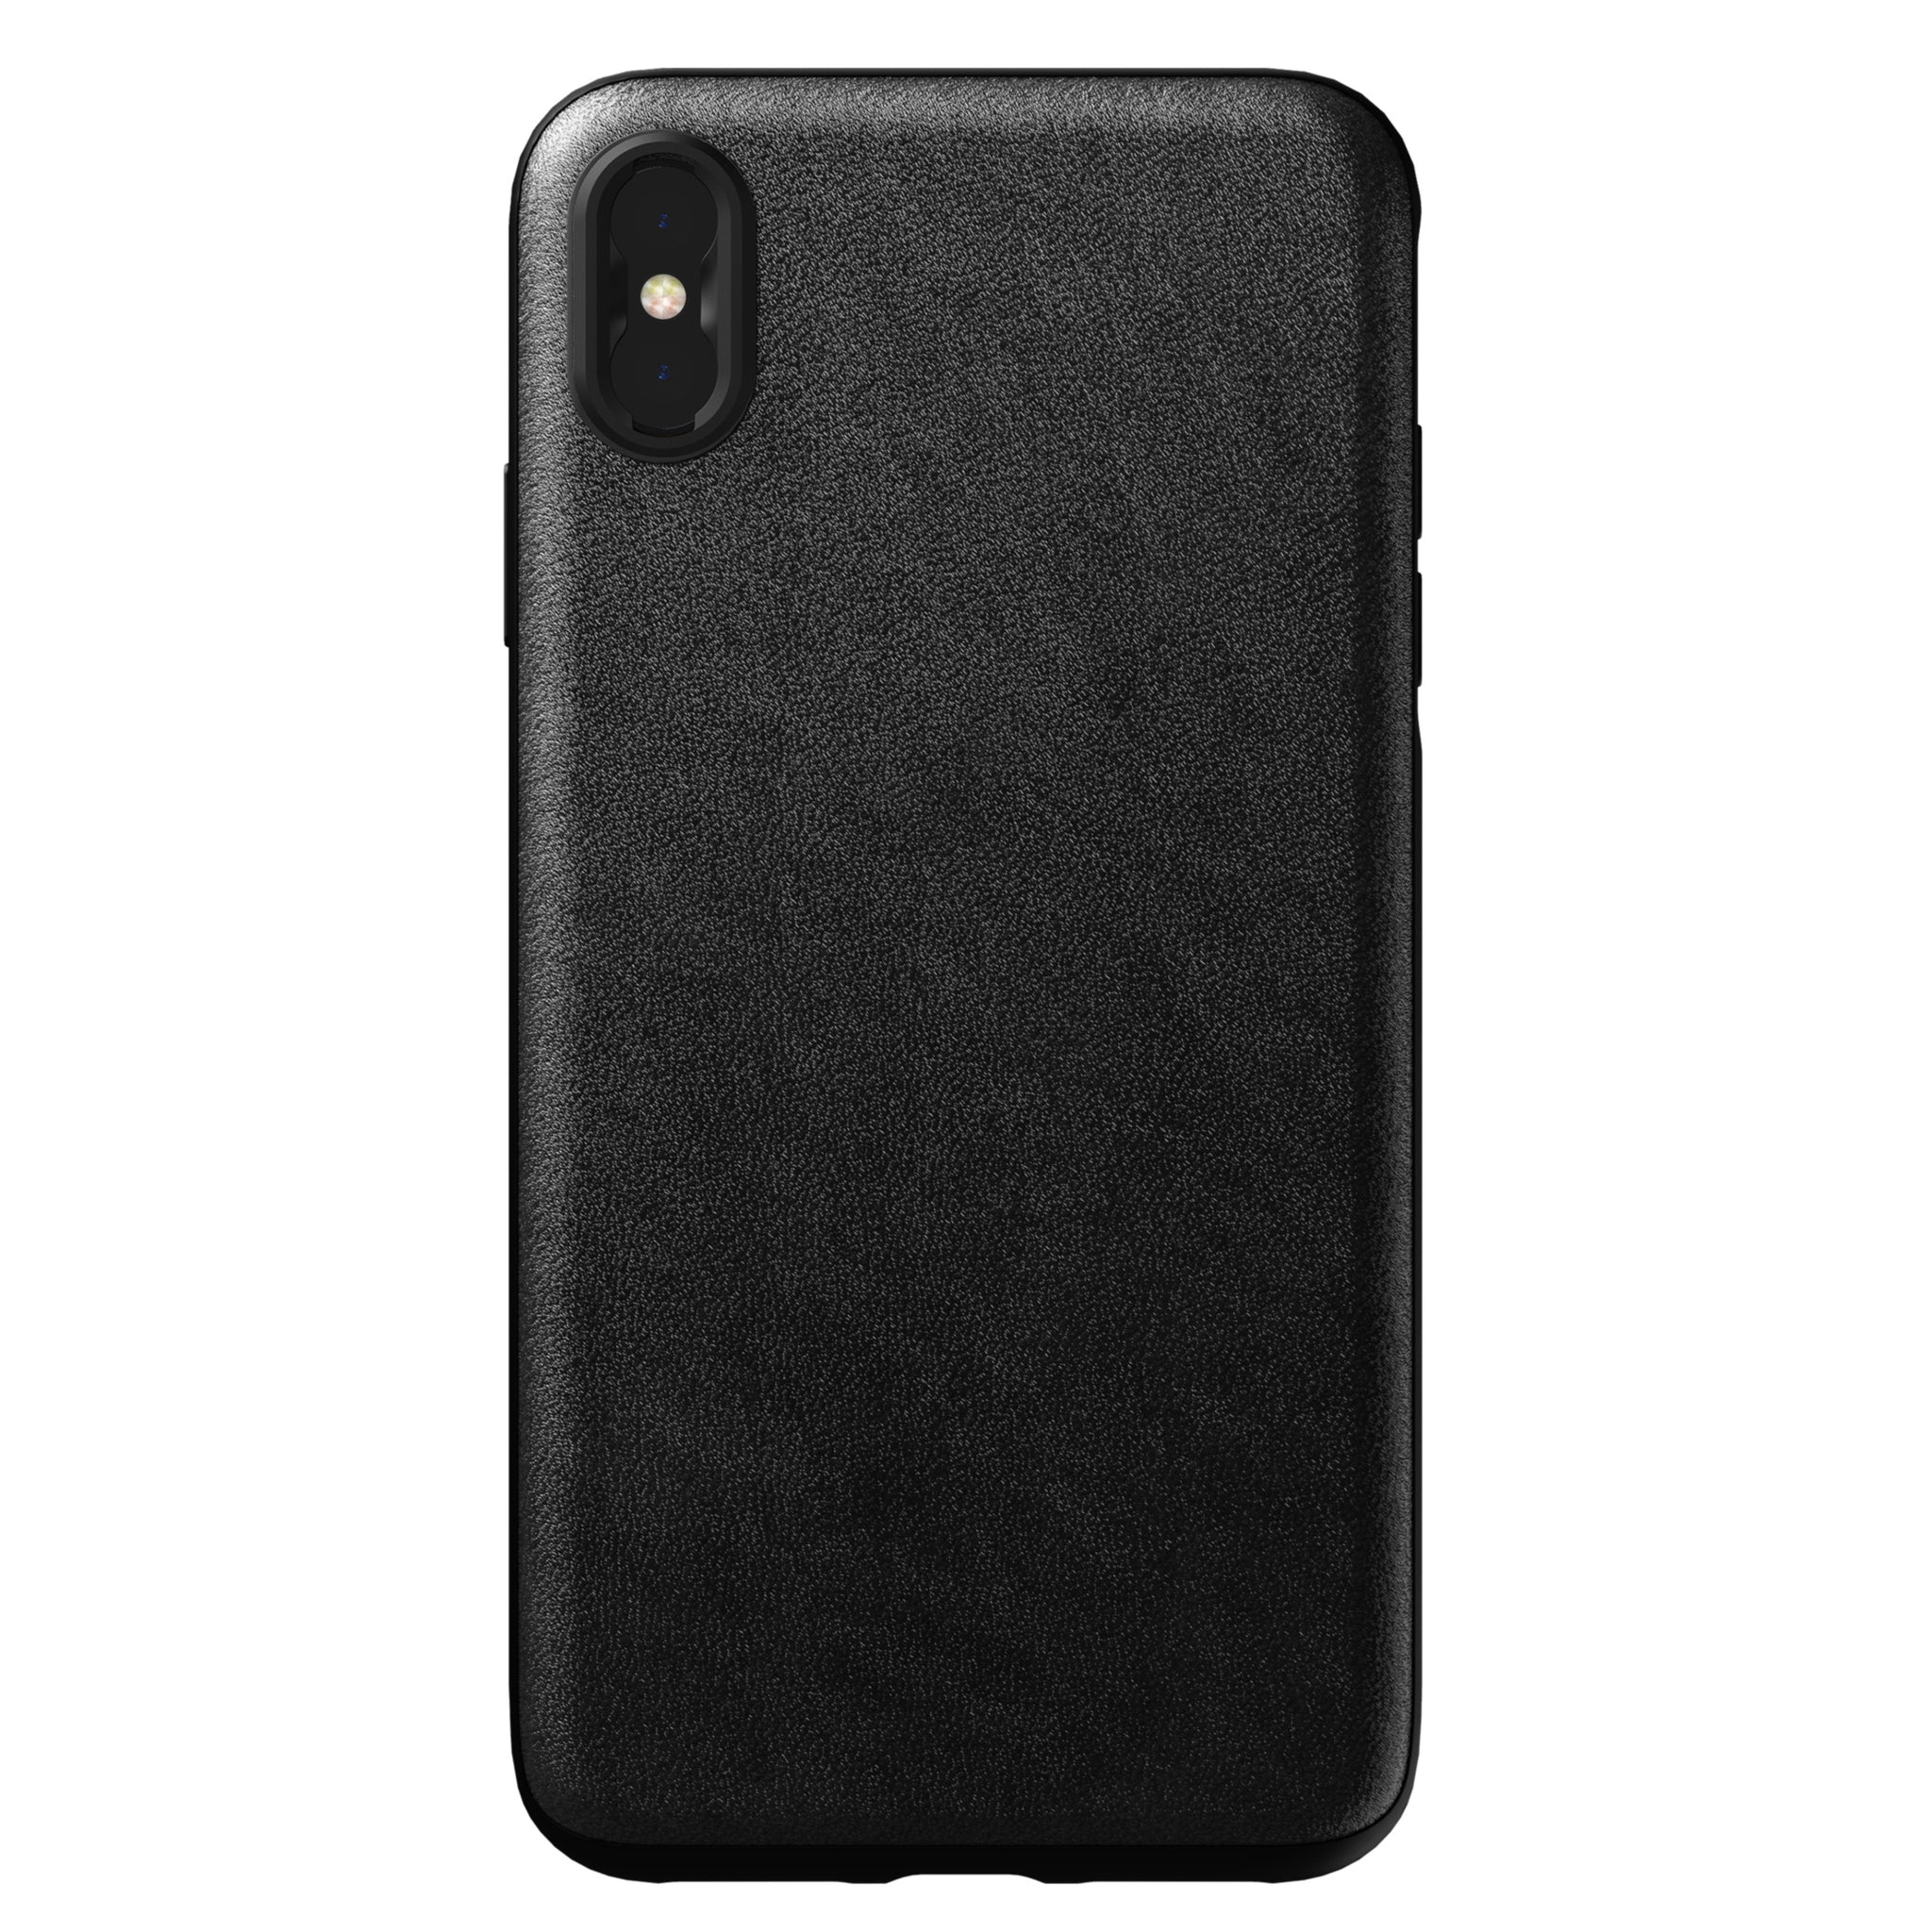 Nomad x Moment Lens Rugged Case for iPhone XS Max - Black